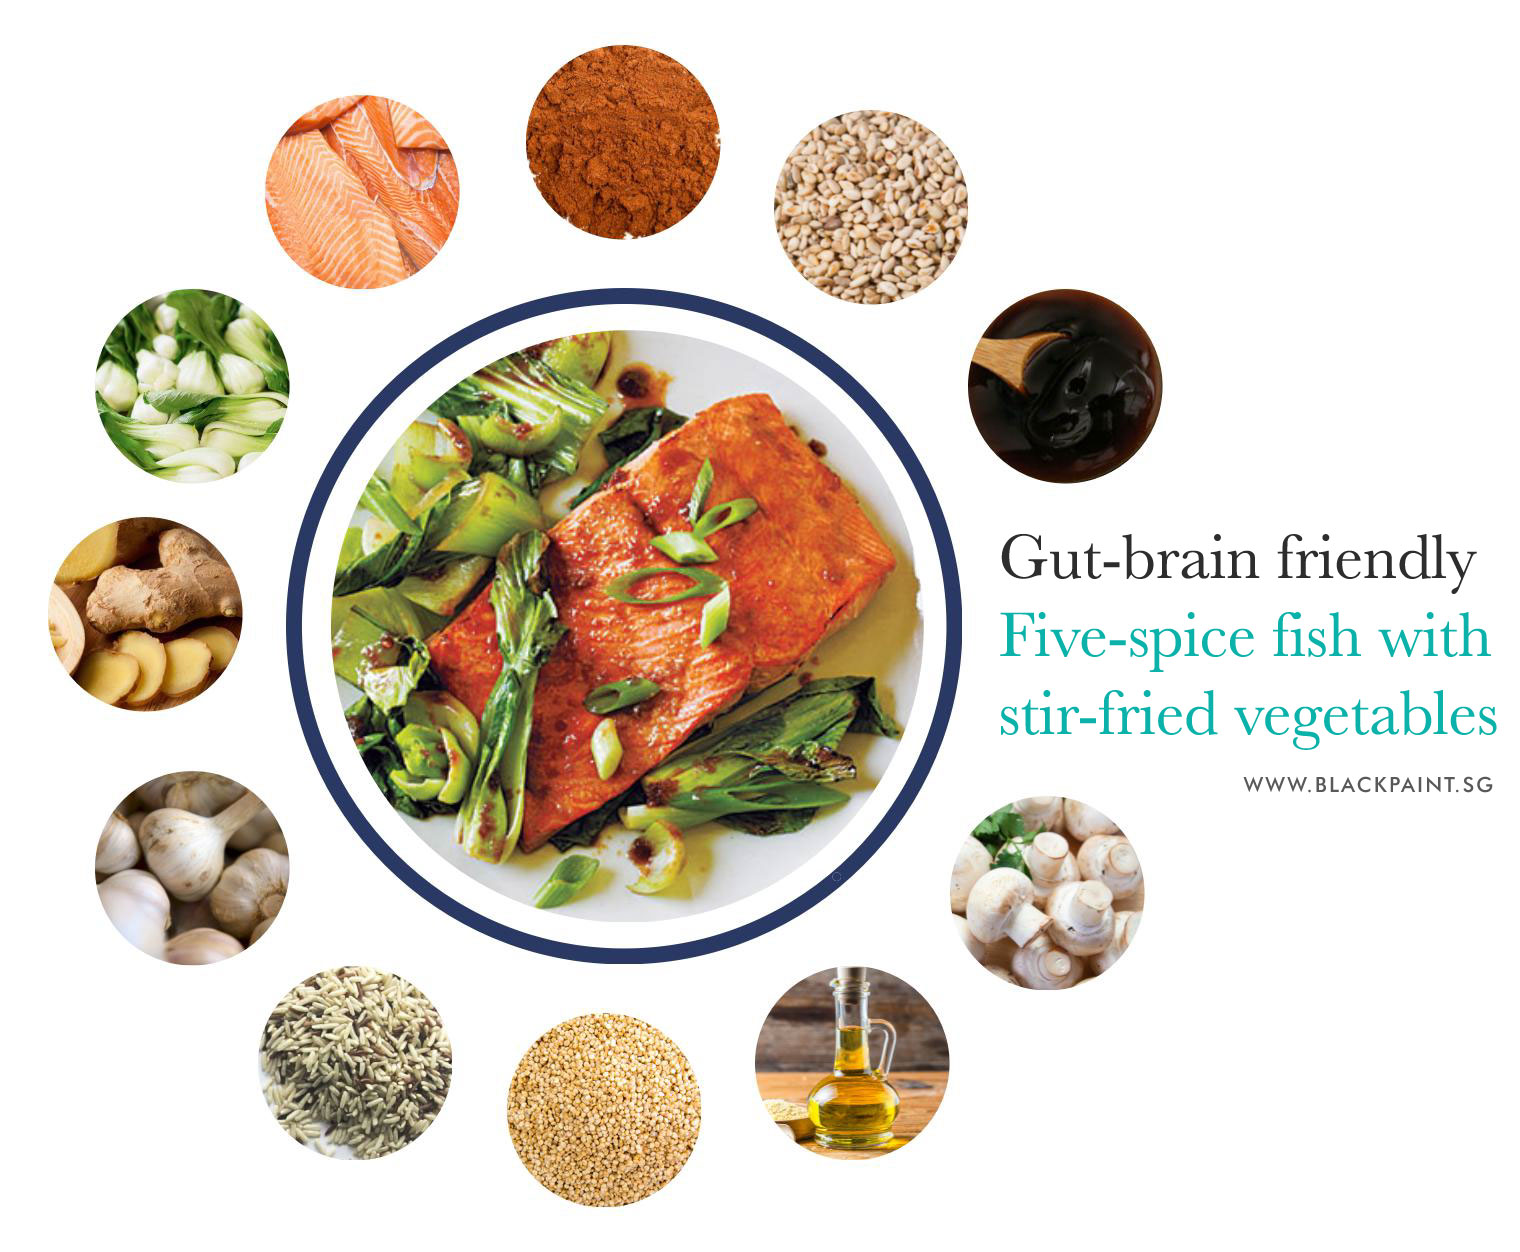 Gut-brain friendly recipe with fish and vegetables